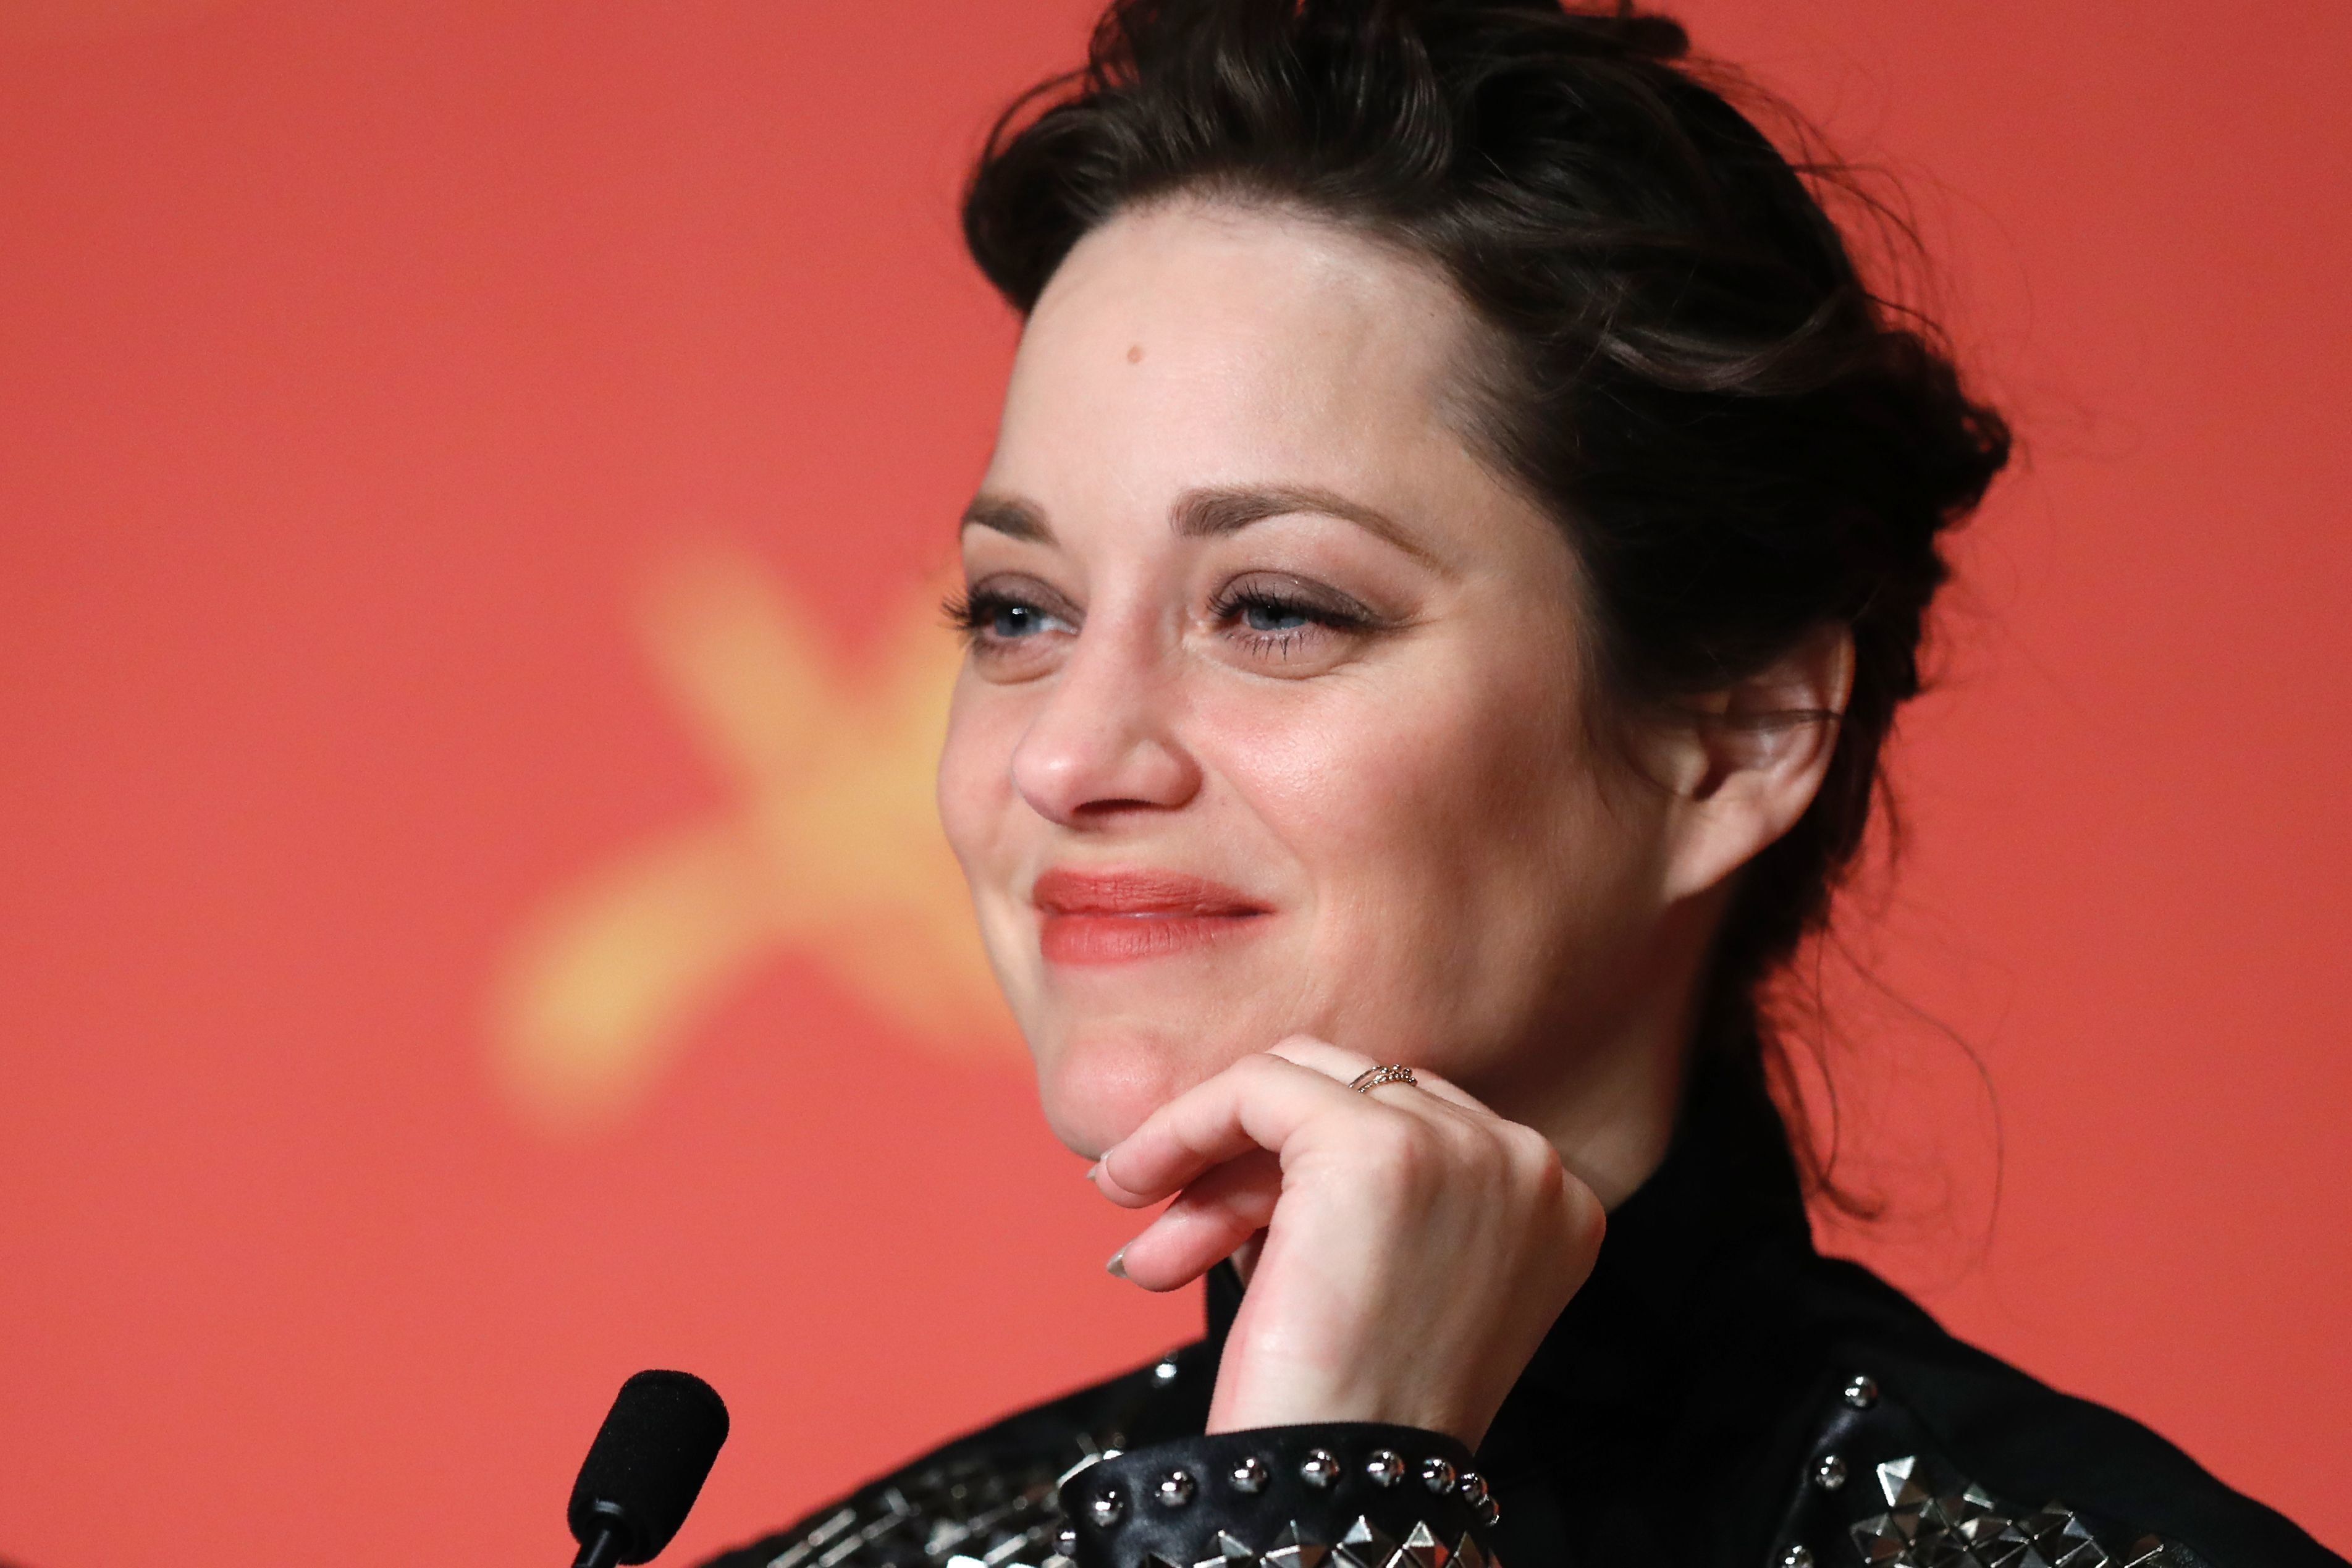 Marion Cotillard Responds To Rumors Amid Brangelina